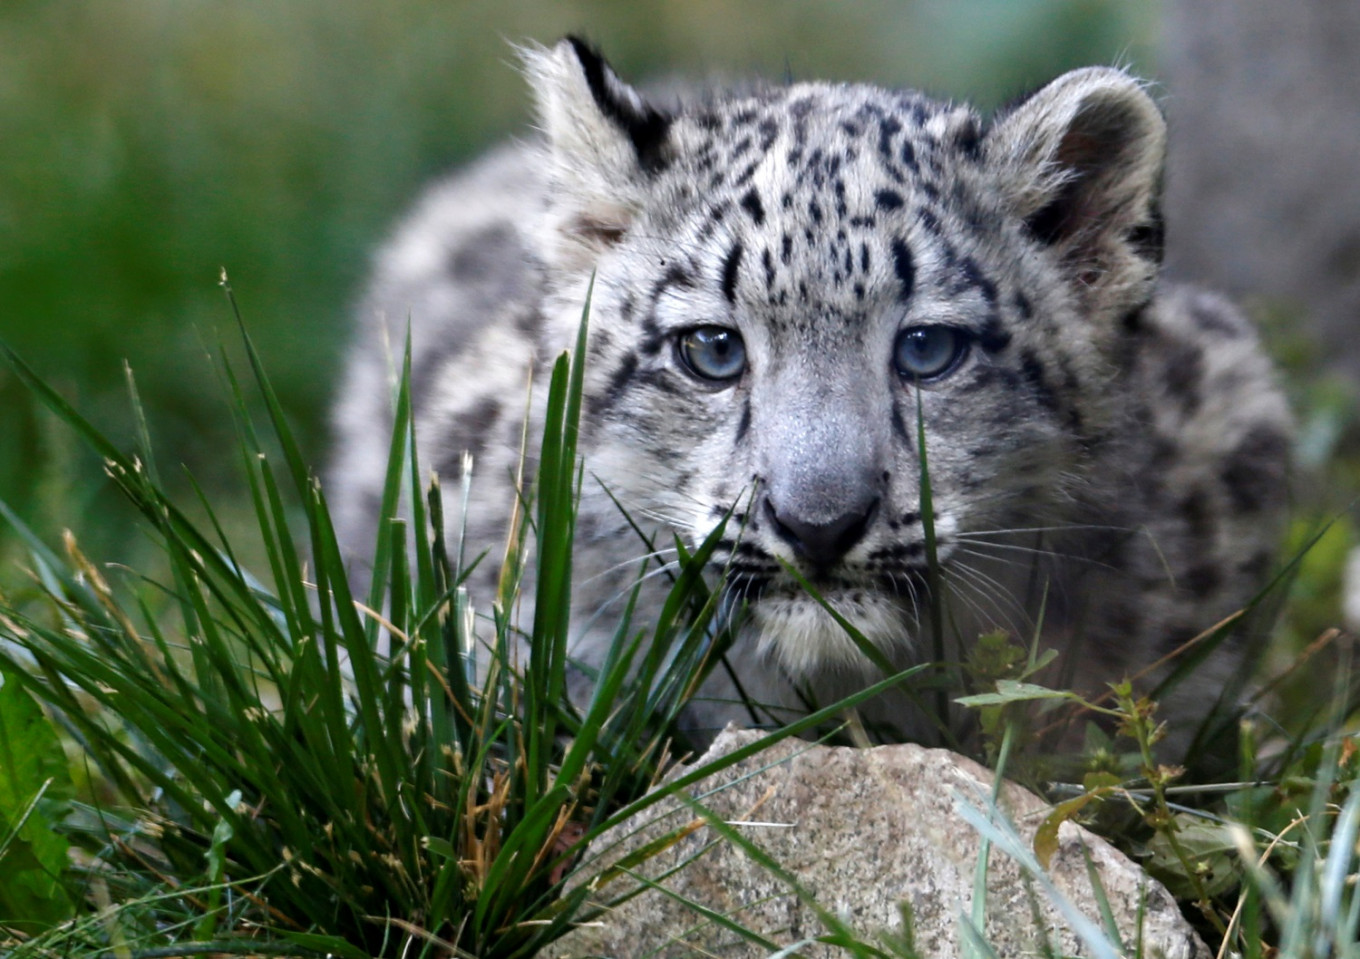 As world falls behind on UN wildlife targets, bright spots offer hope